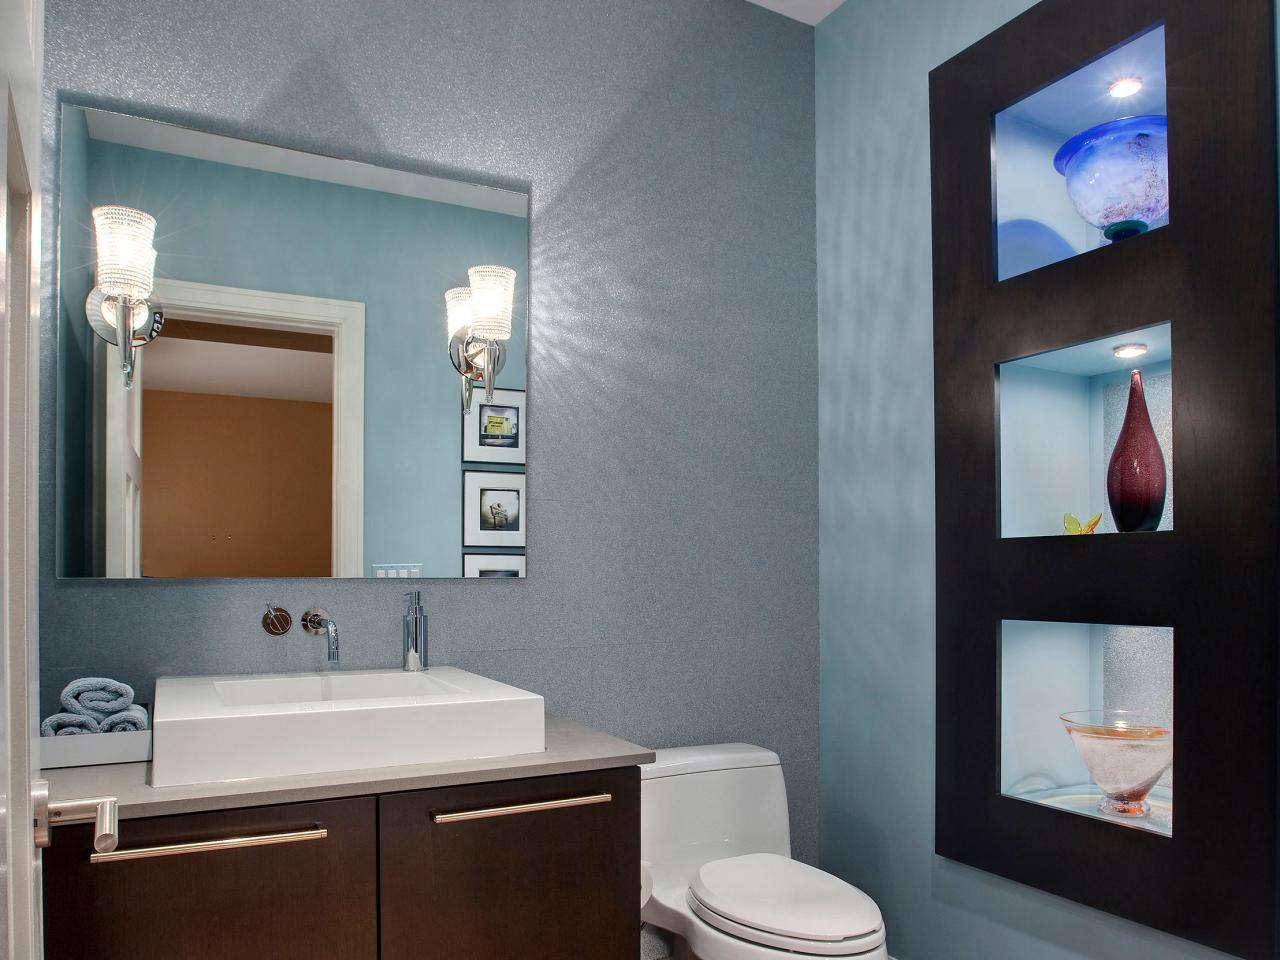 Half Bathroom Or Powder Room HGTV - Powder bathroom ideas